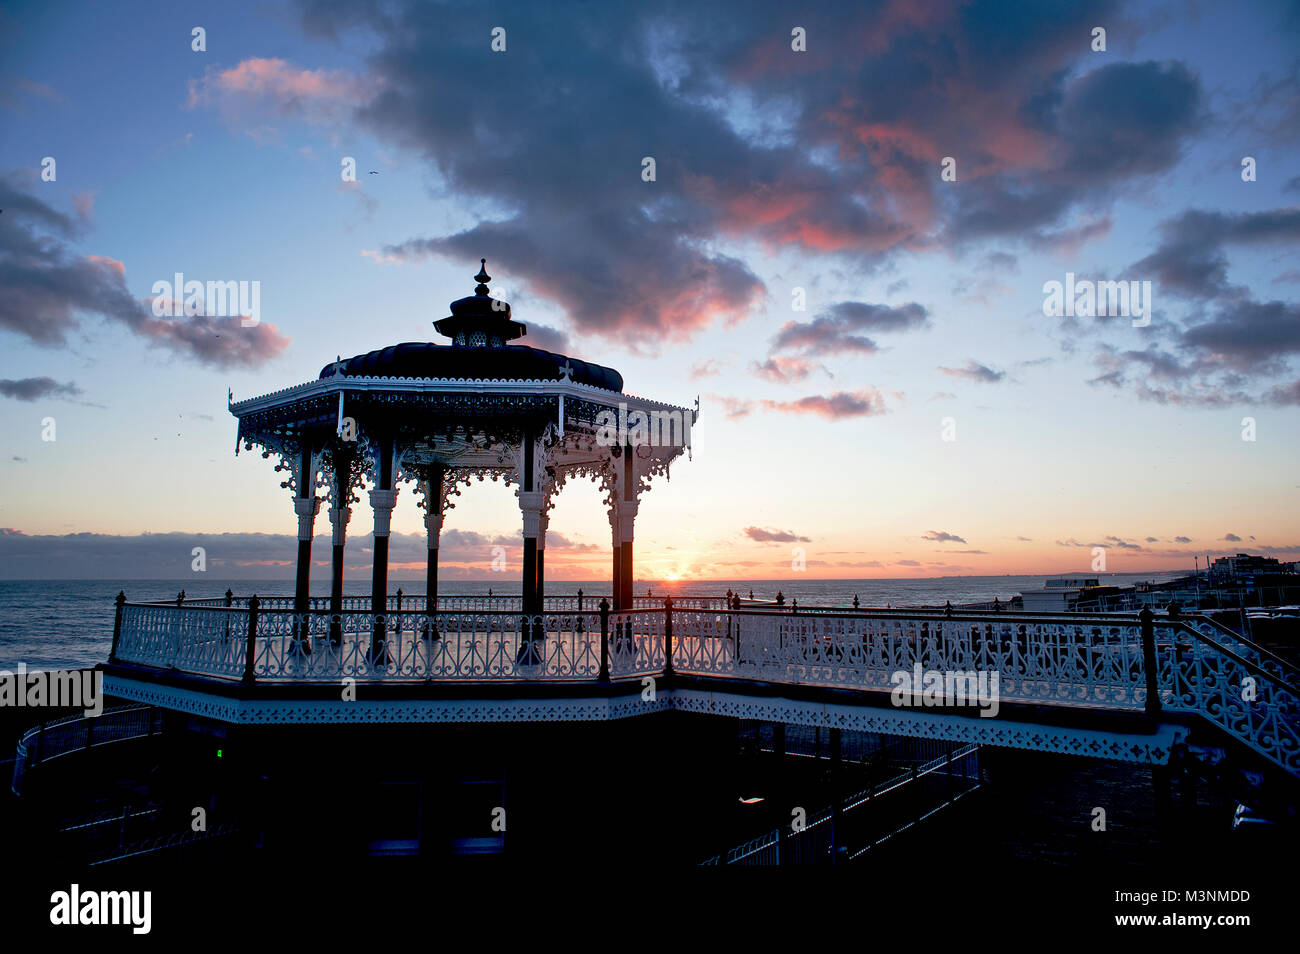 The Bandstand on Brighton's seafront first opened in 1884 and is considered to be one of the finest examples of - Stock Image